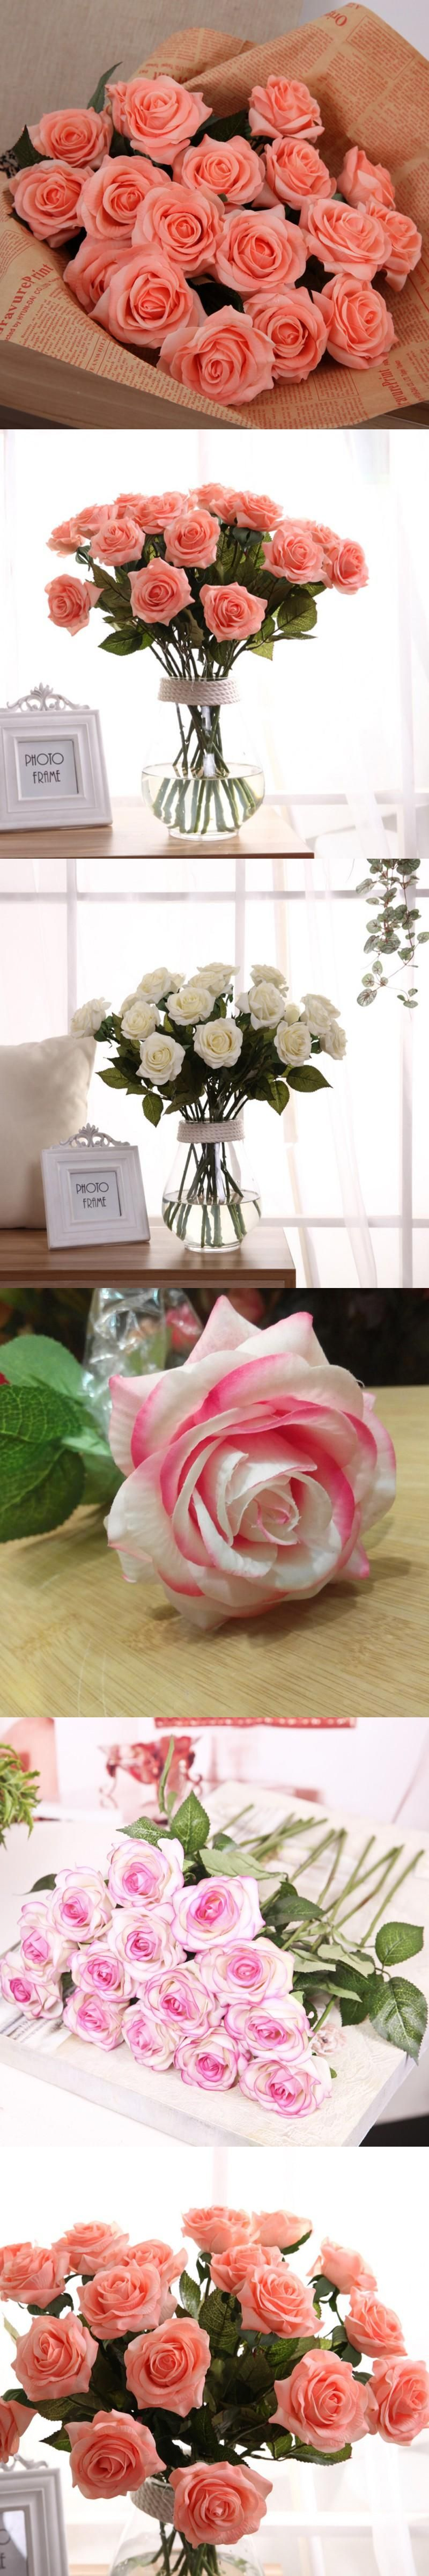 Artificial silk latex rose flowers wedding bouquet bridal decoration artificial silk latex rose flowers wedding bouquet bridal decoration bundles real touch flower bouquets realistic flow junglespirit Images